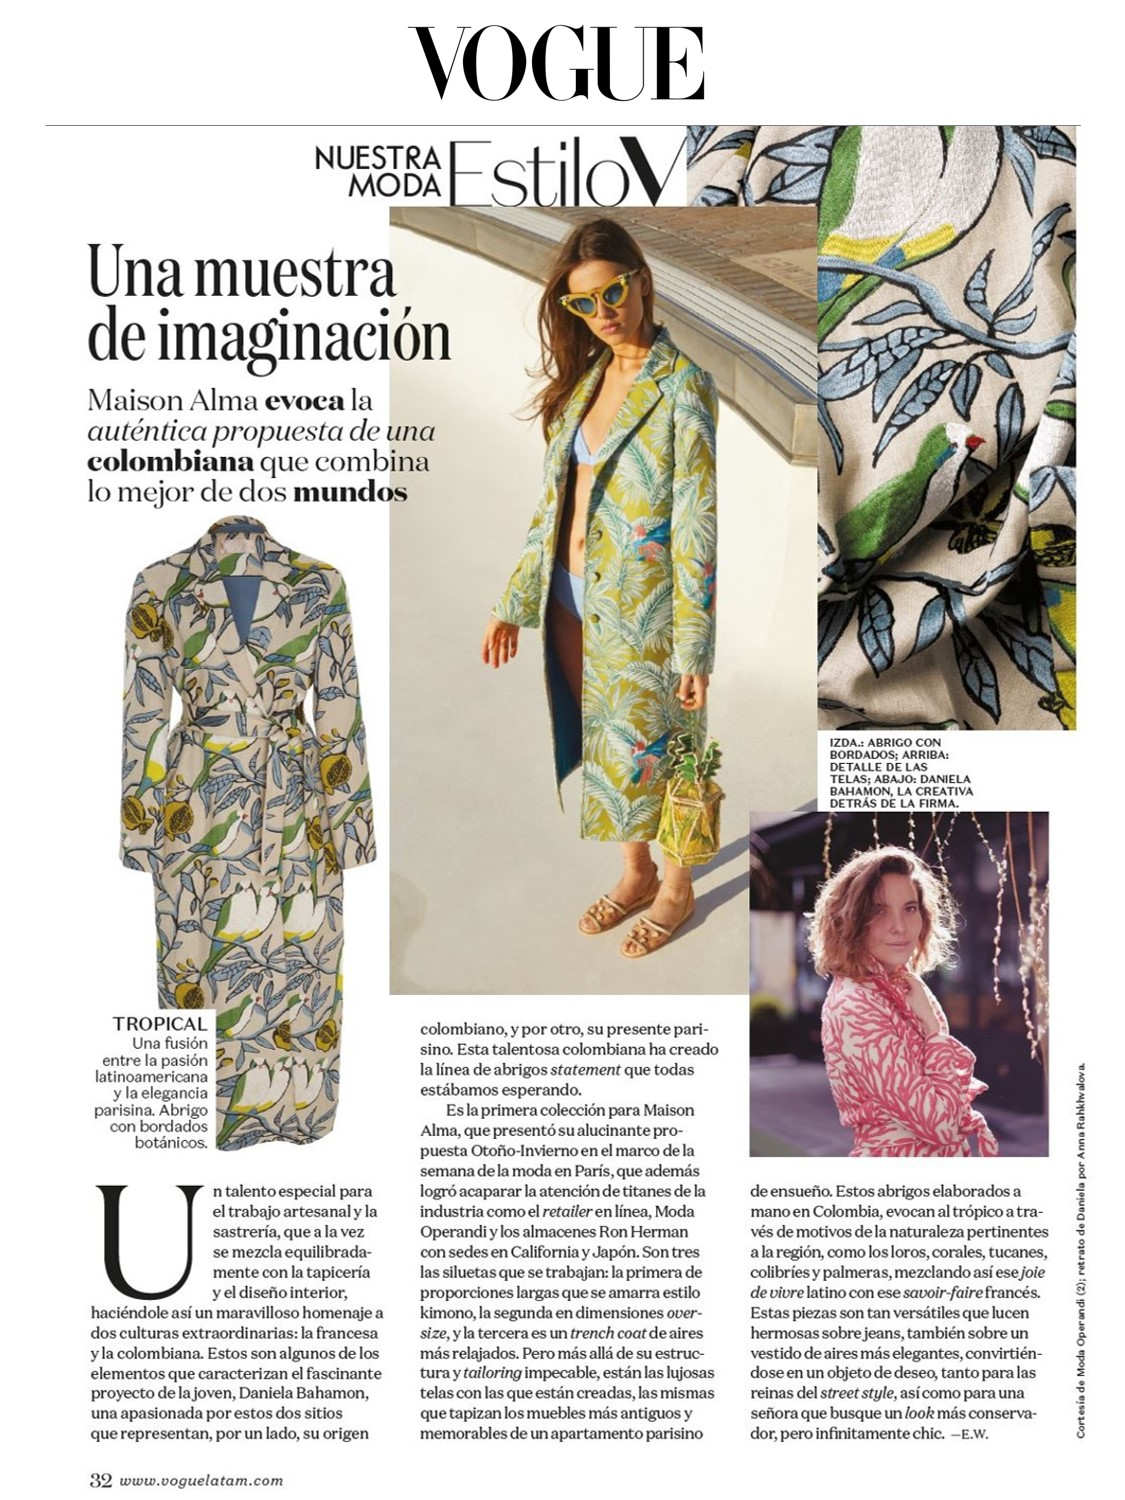 VOGUE MEXICO MAISON ALMA 2017.jpg